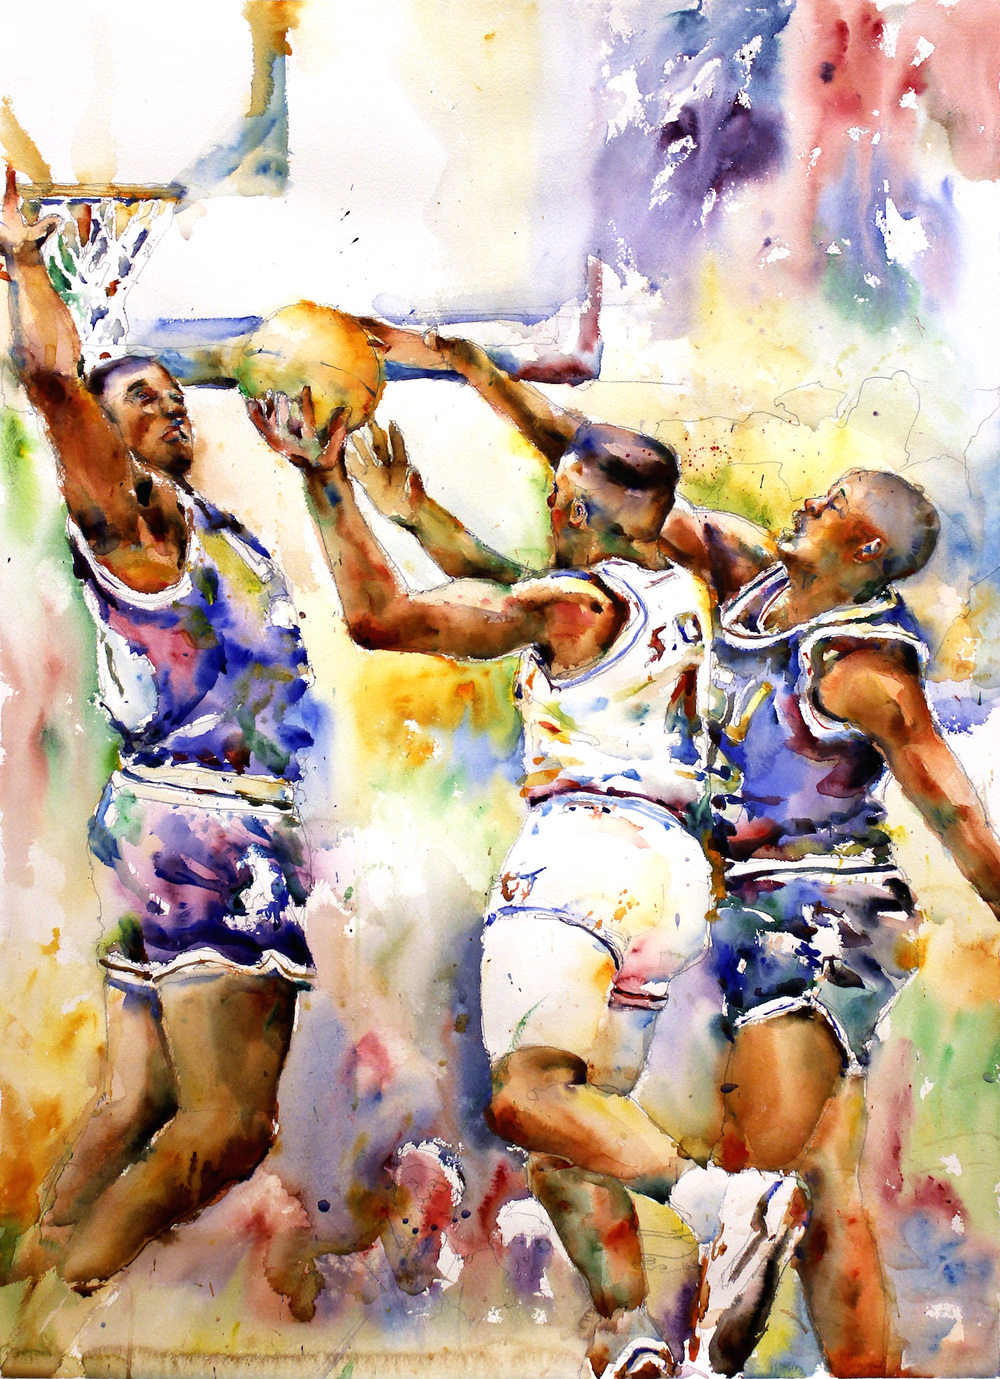 LSU-GT-painting-web.jpg